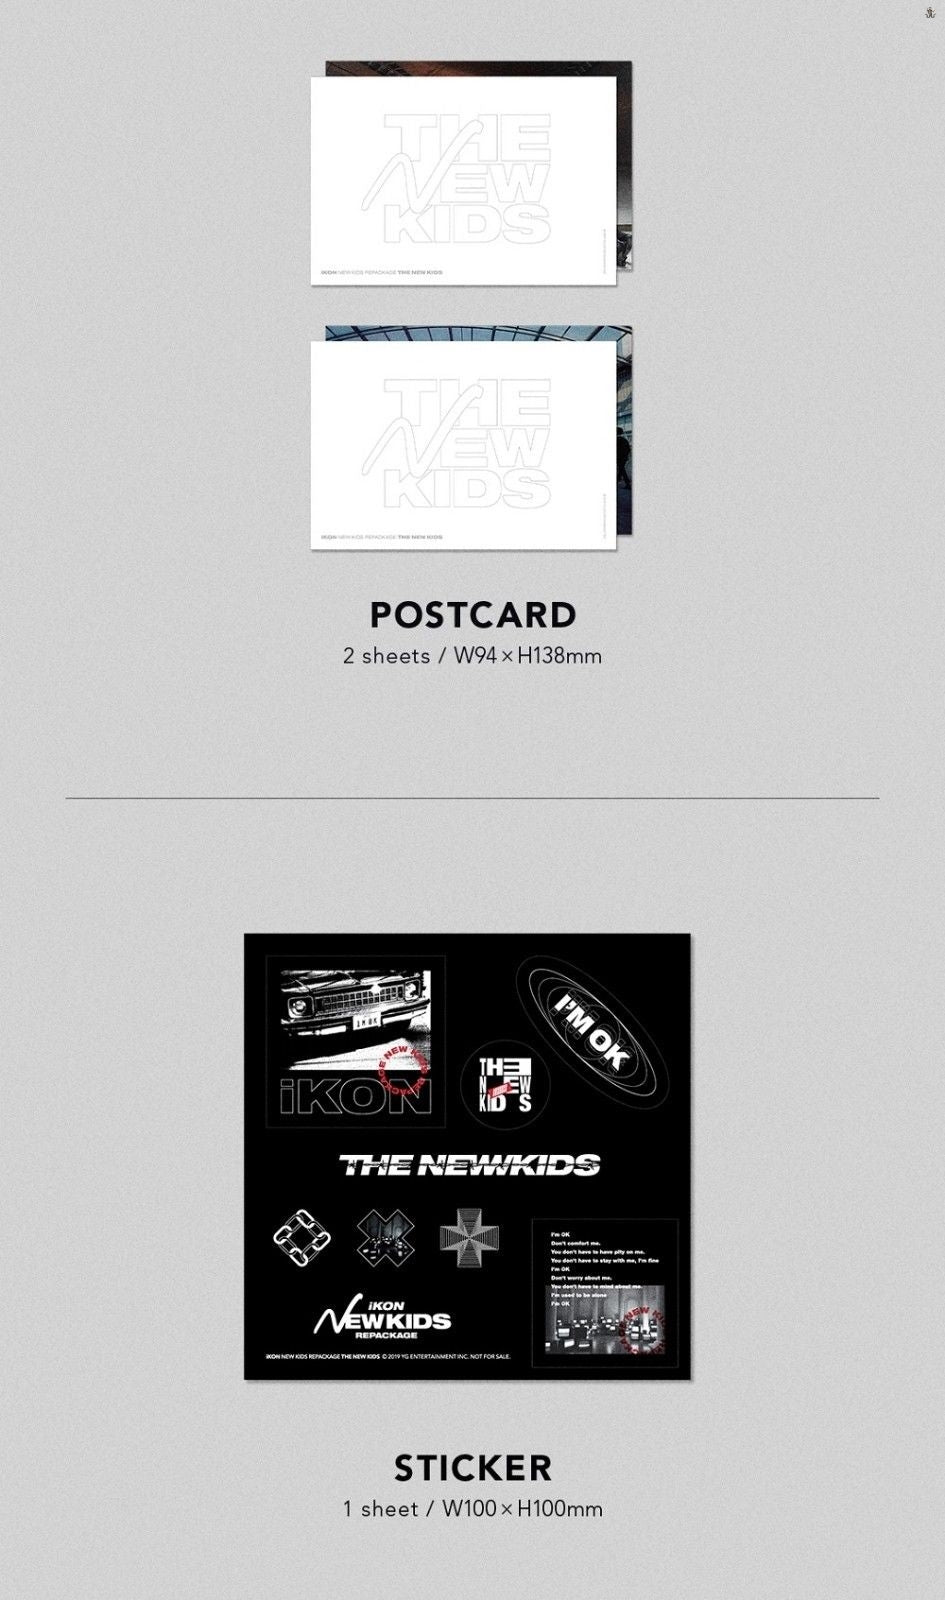 iKON New Kids Repackage: THE NEW KIDS 2CD (You Can Choose